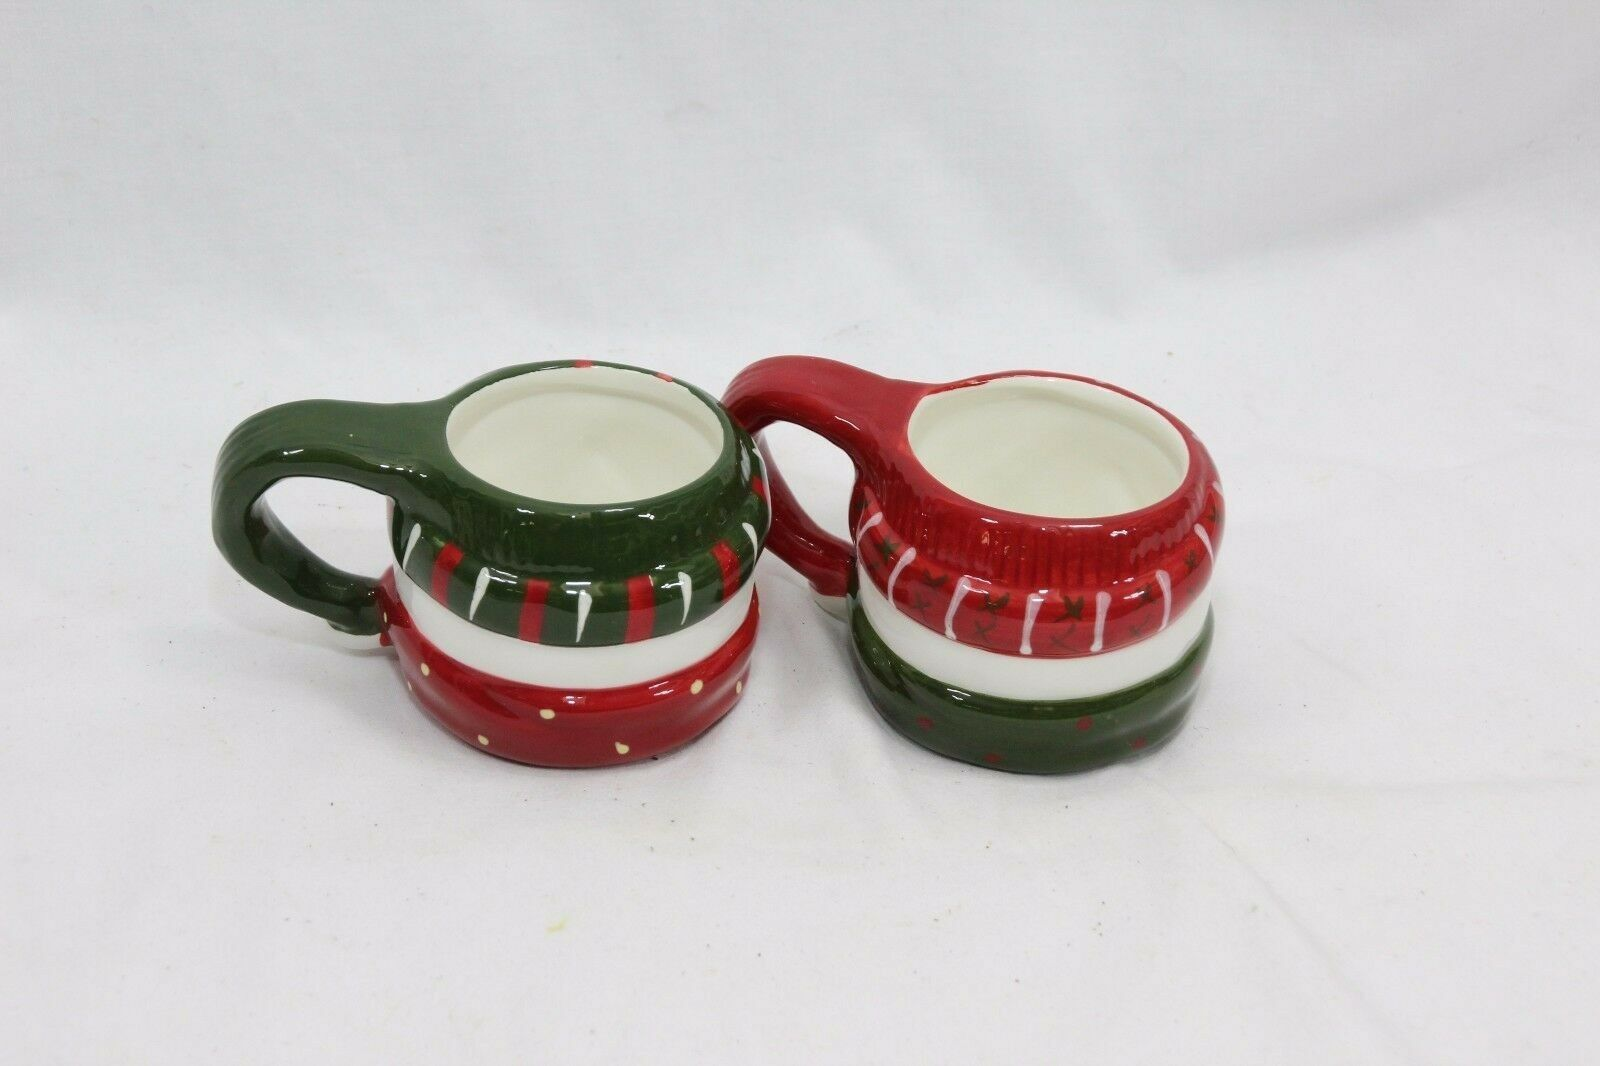 Snowman Xmas 4 Cups and 4 Saucers image 11